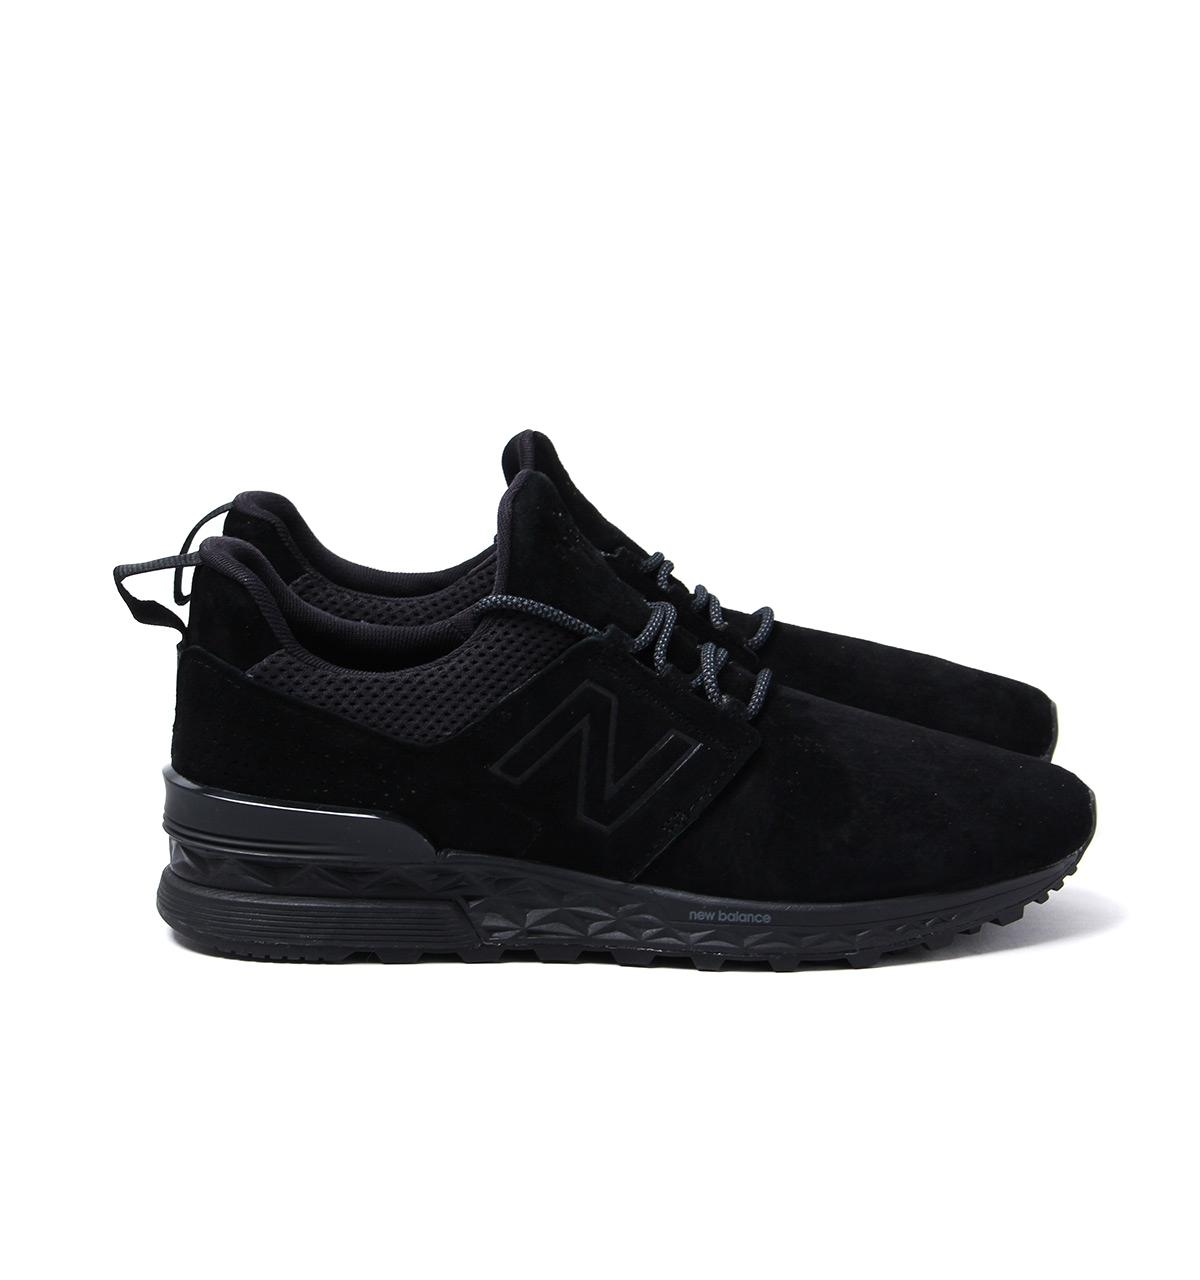 online retailer 5a24a 36dc2 ... new arrivals new balance 574 tonal black suede trainers for men lyst. view  fullscreen 0fcfc